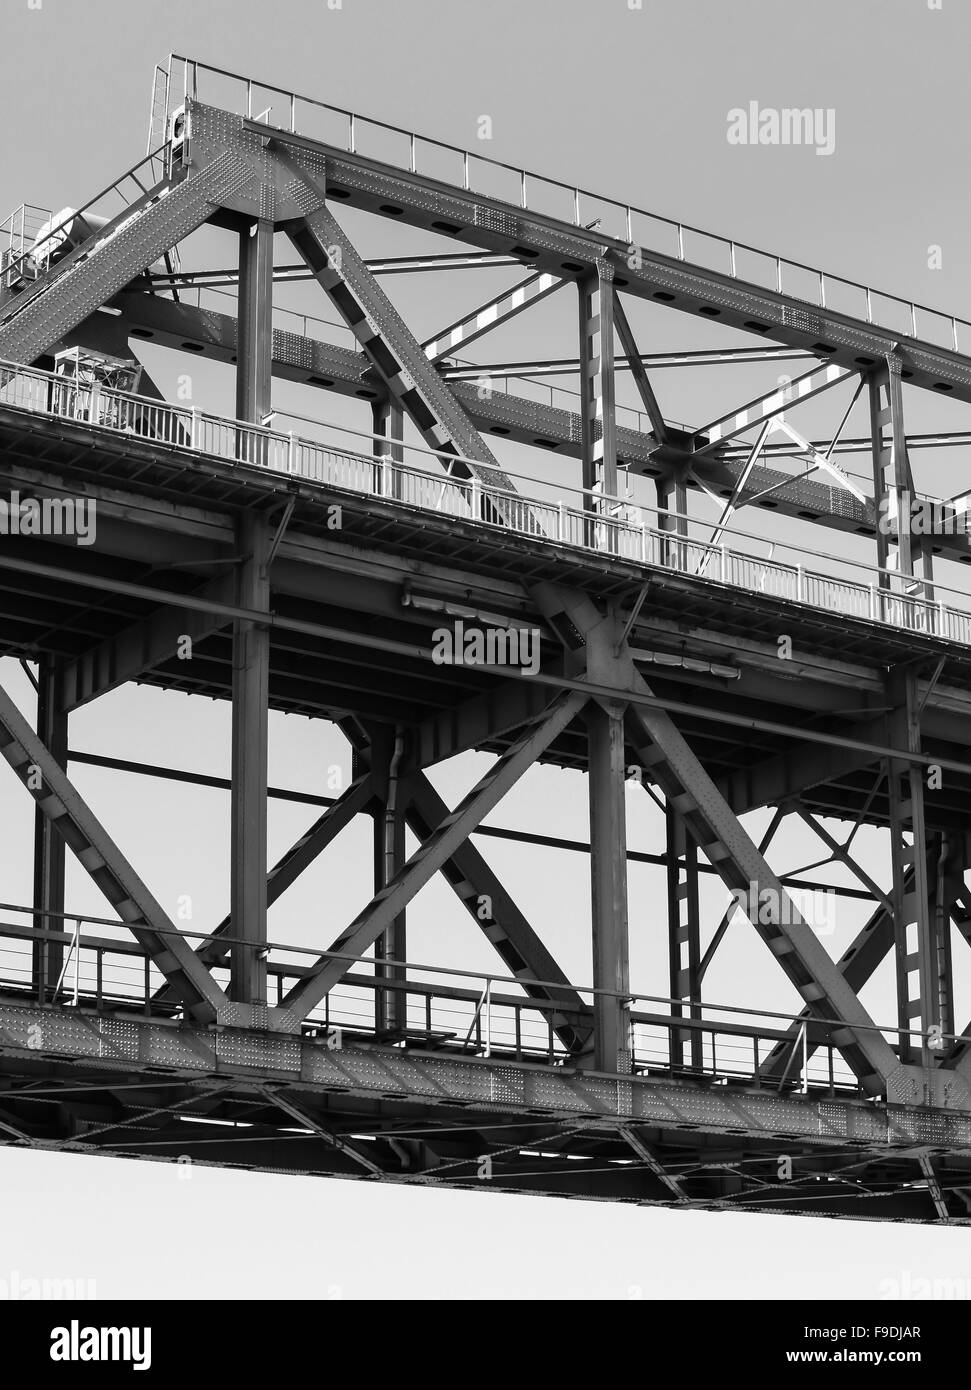 Truss Black And White Stock Photos Images Alamy Bridge Diagram Track Pony By Steel Construction Fragment Photo Image